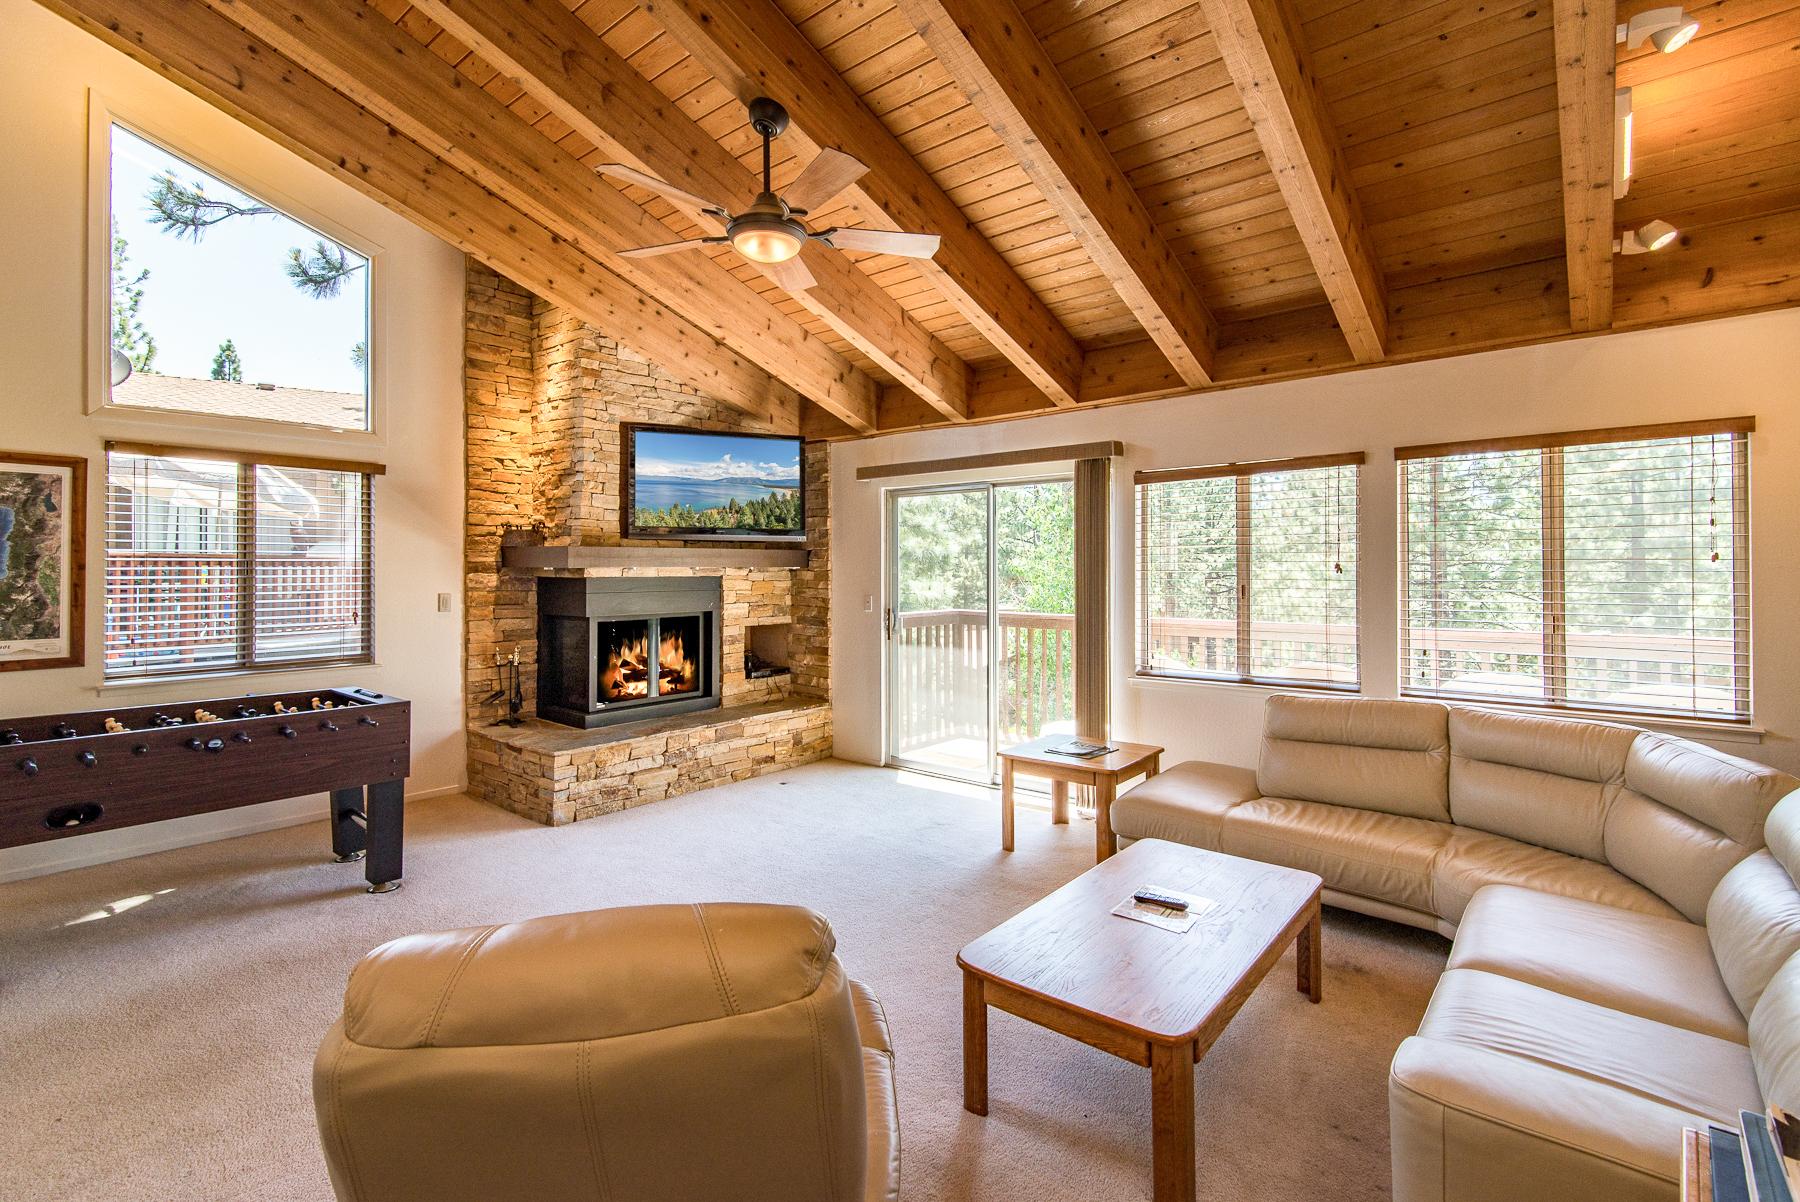 Zephyr Cove NV Vacation Rental A gas fireplace,